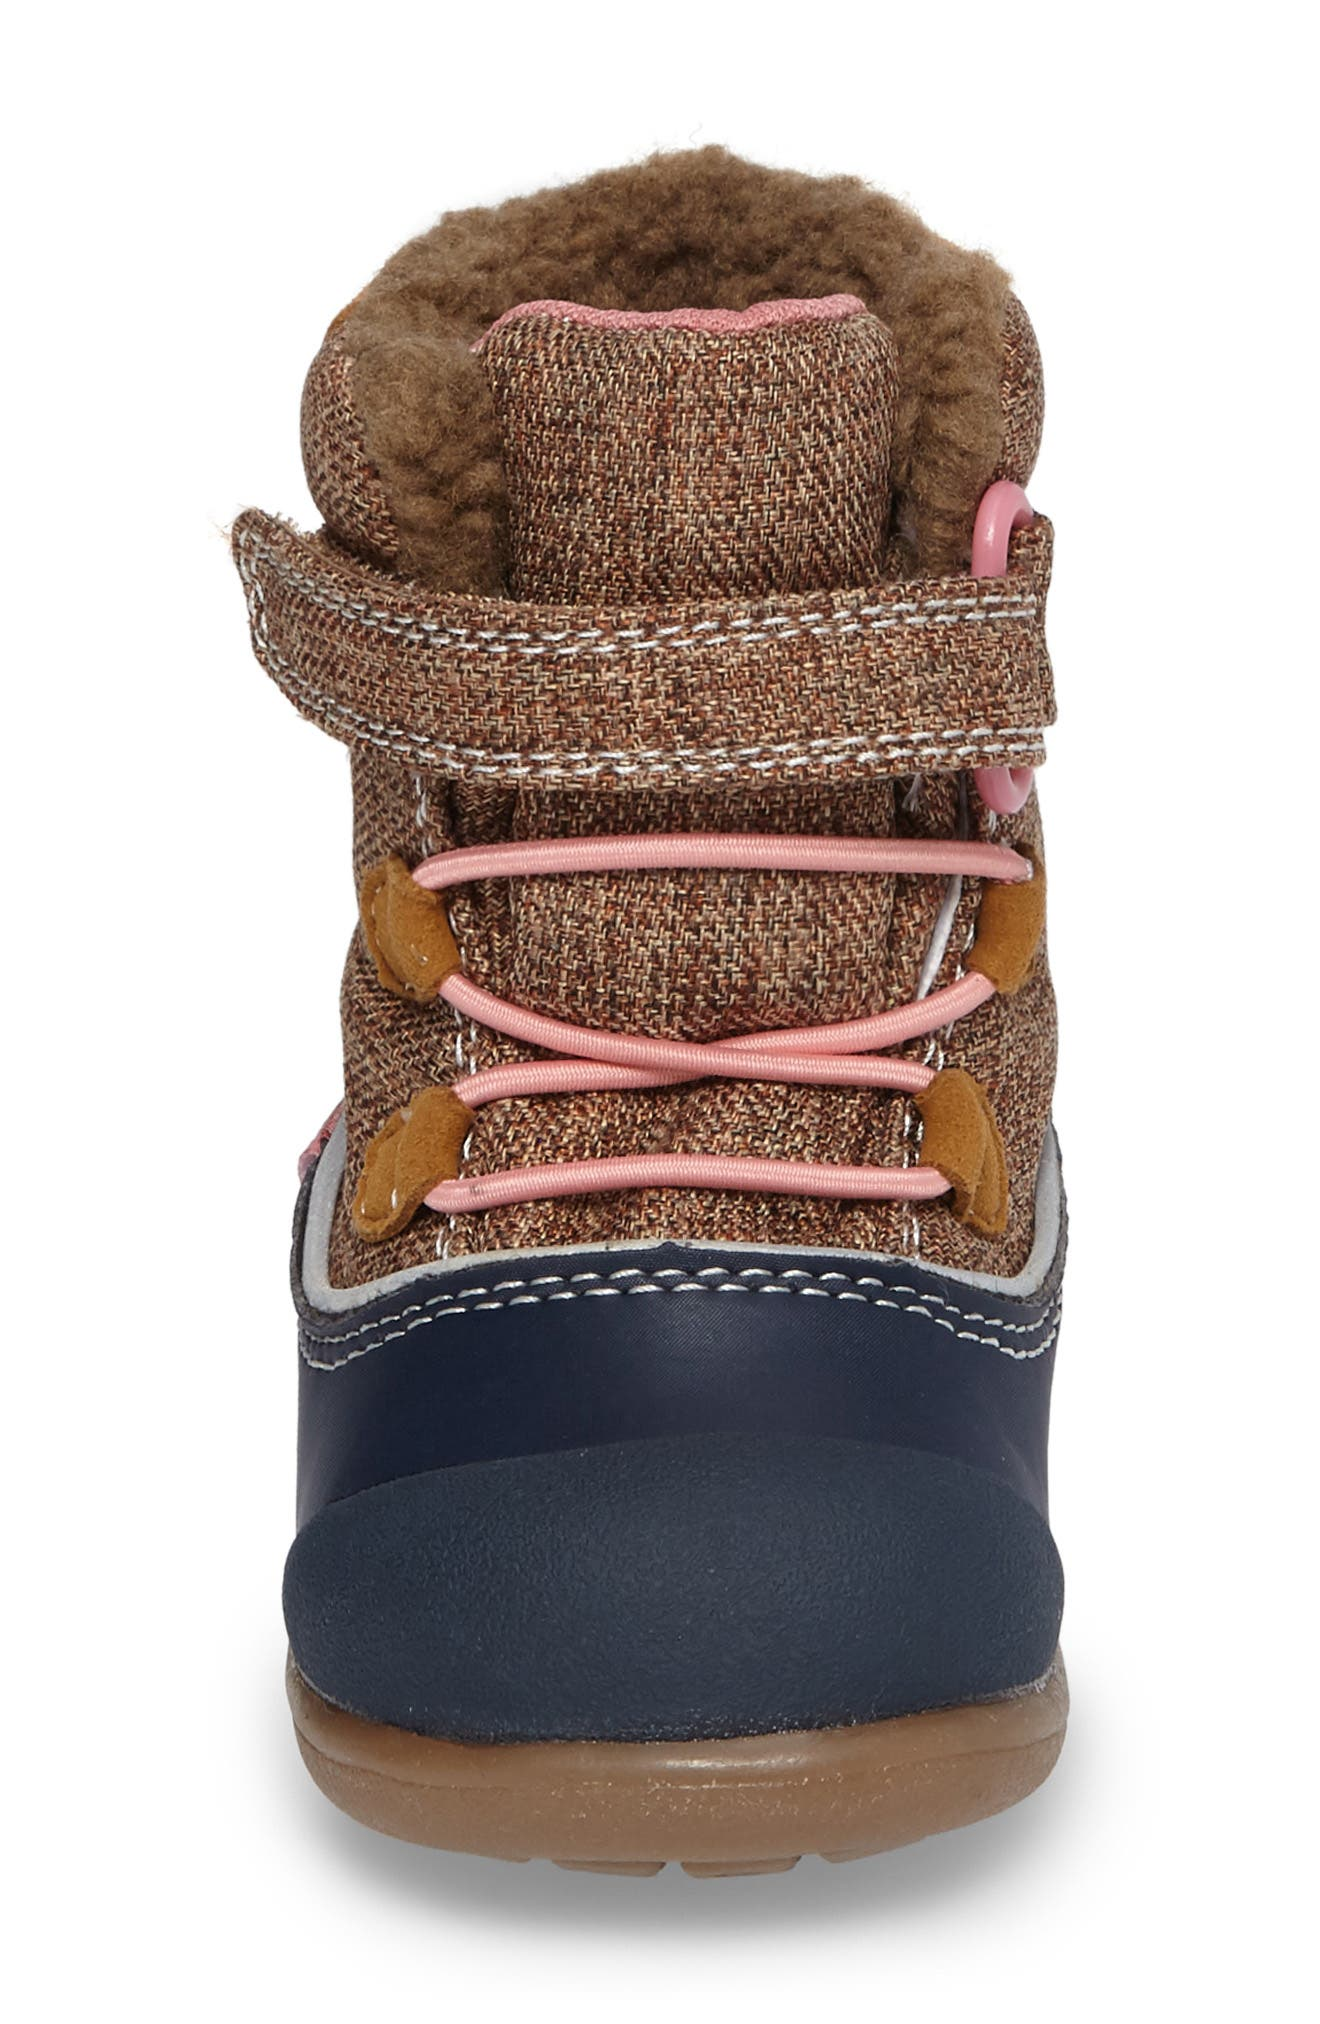 'Abby' Waterproof Boot,                             Alternate thumbnail 4, color,                             Brown